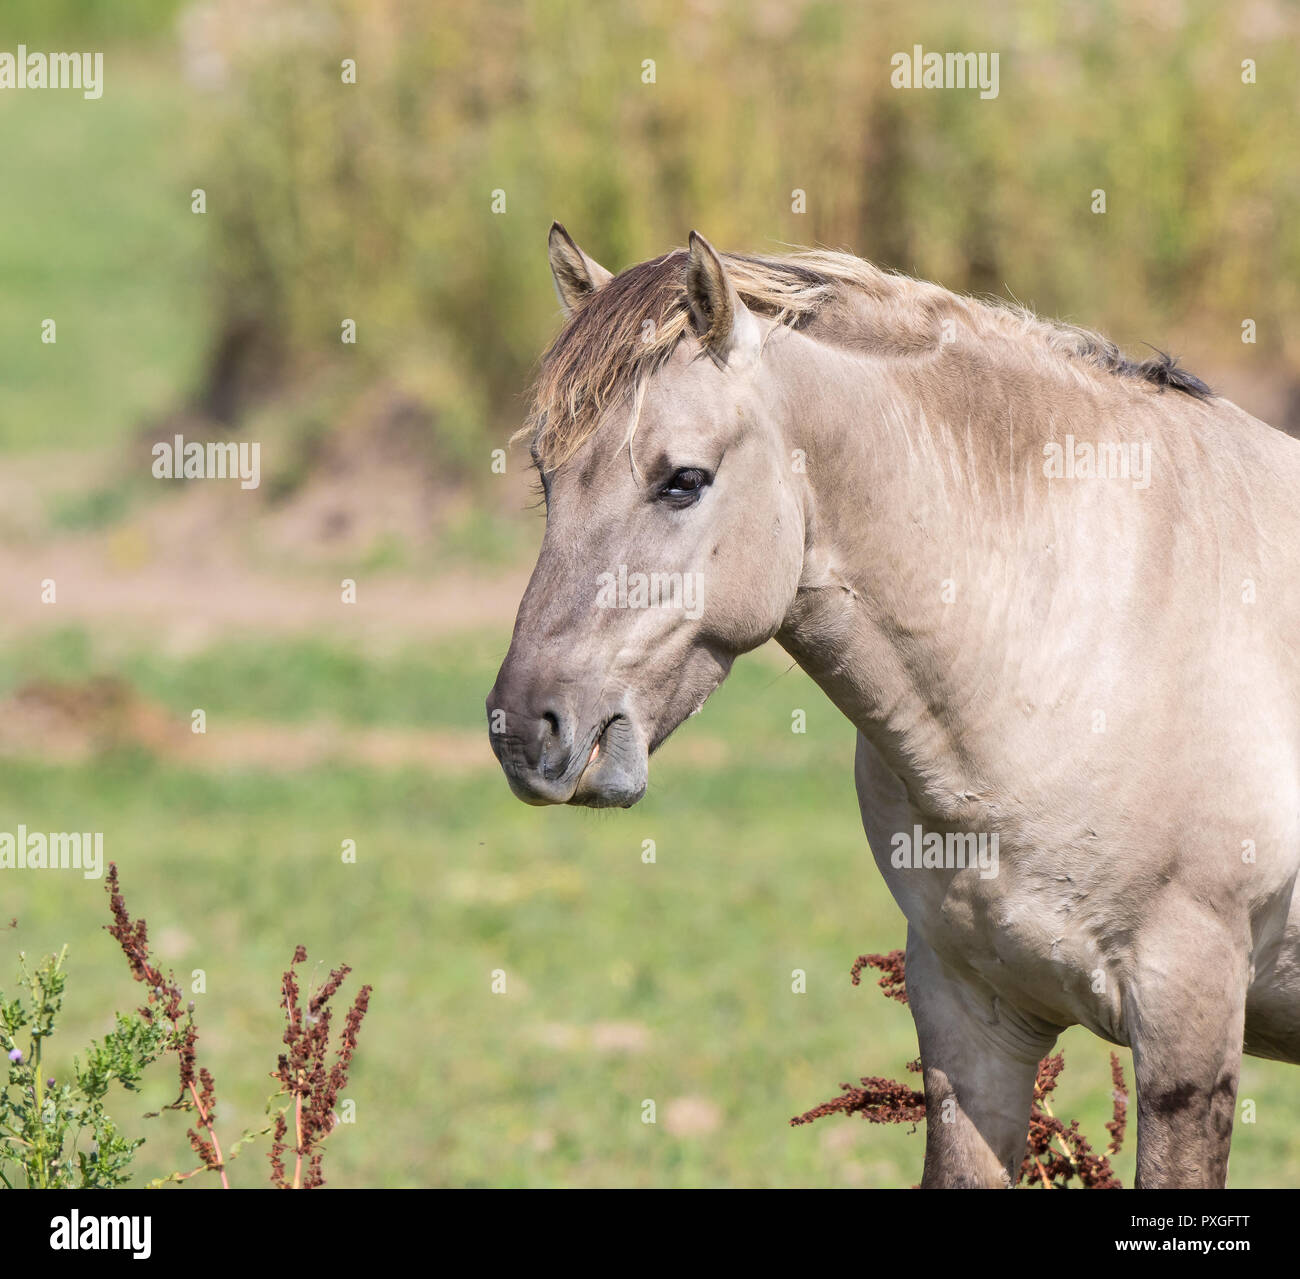 Detailed, landscape close up of grey-coloured wild horse (head & shoulders) in natural outdoors setting. Animal is on right side of image looking left. - Stock Image